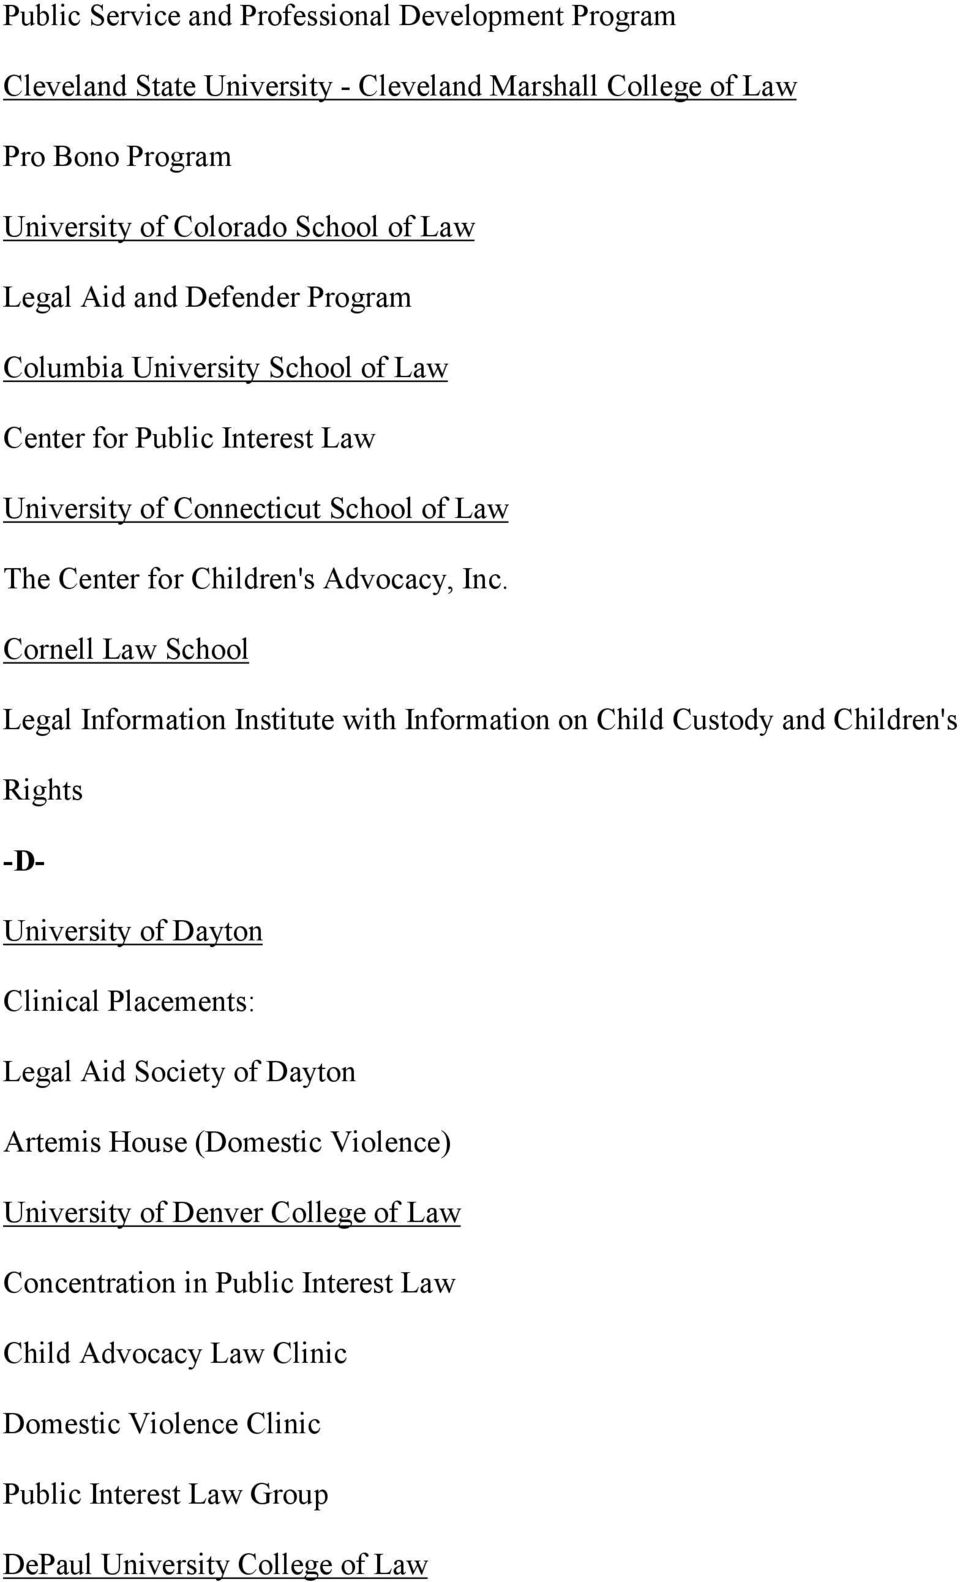 Cornell Law School Legal Information Institute with Information on Child Custody and Children's Rights -D- University of Dayton Clinical Placements: Legal Aid Society of Dayton Artemis